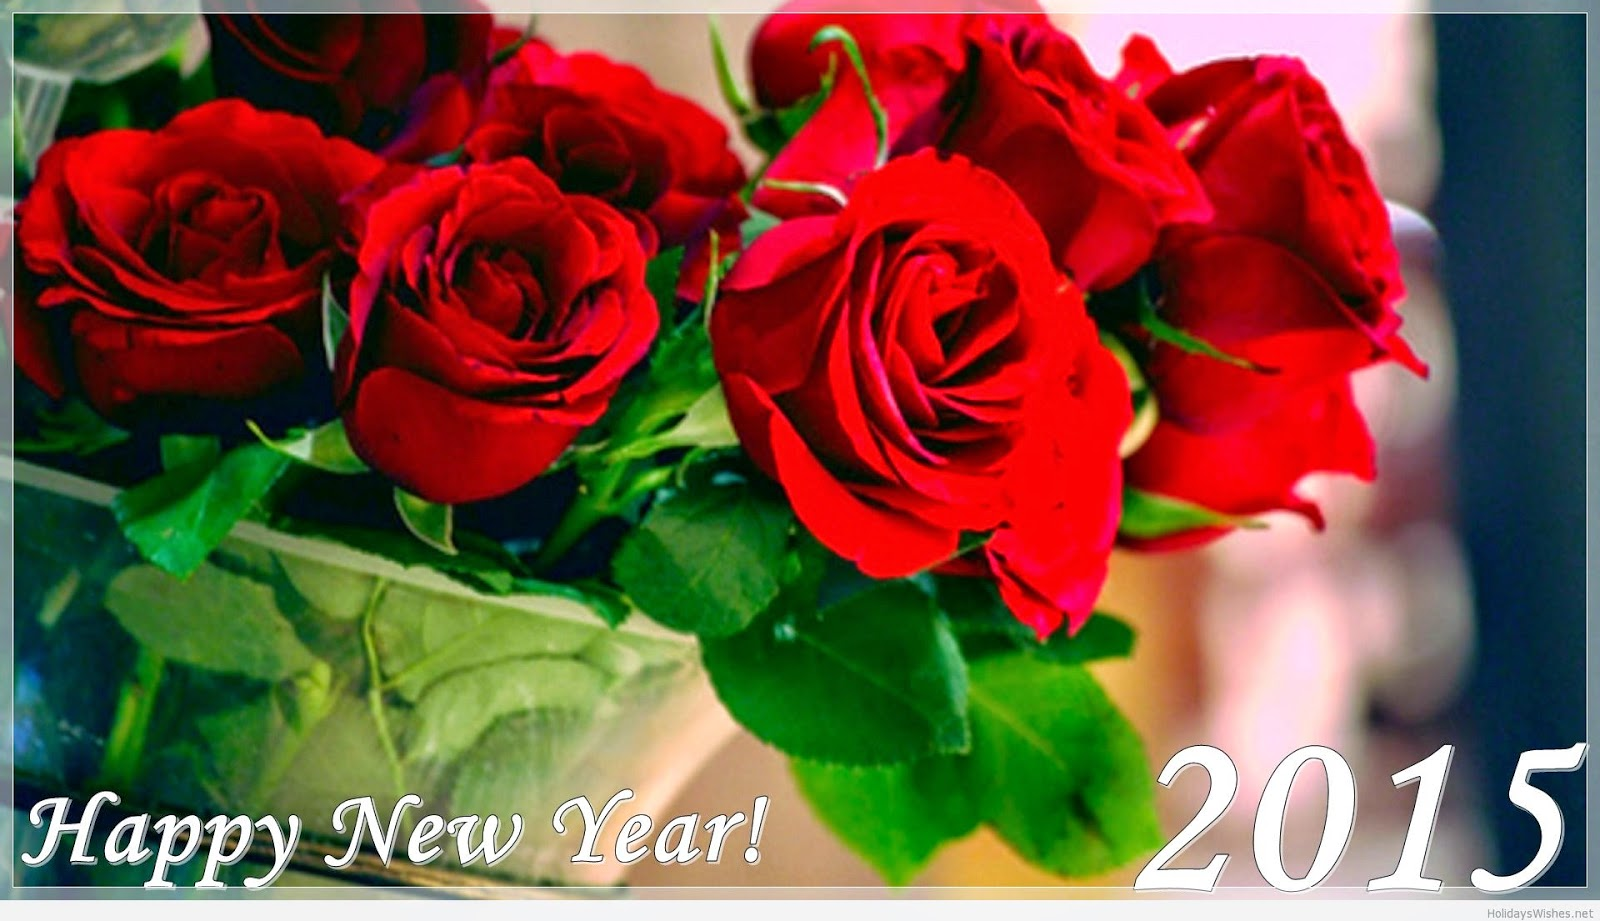 Happy New Year 2015 HD Cards For Friends - Download Rose Wallpaper